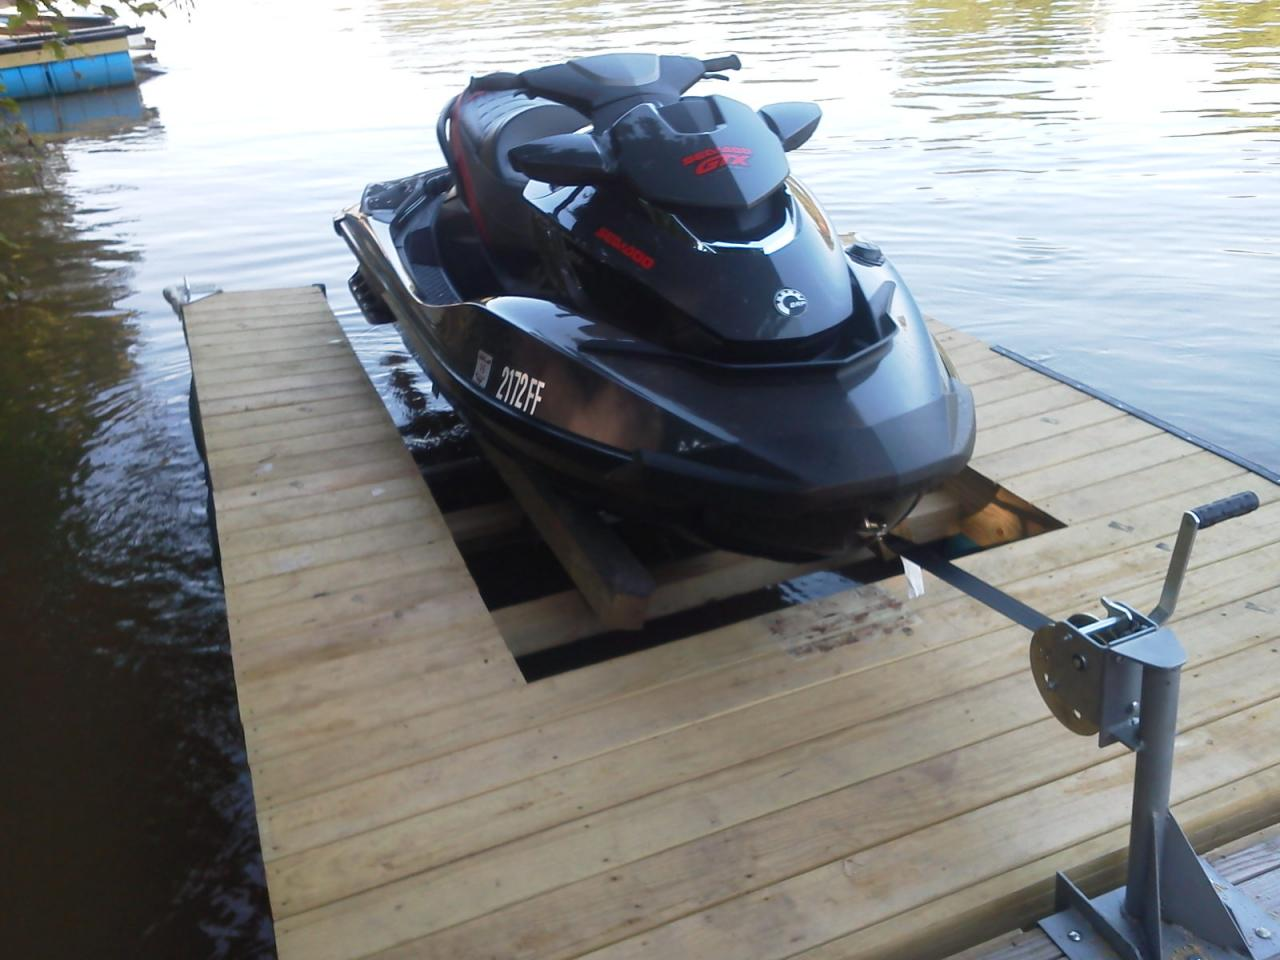 Used Jet Ski Floating Dock For Sale | Autos Post